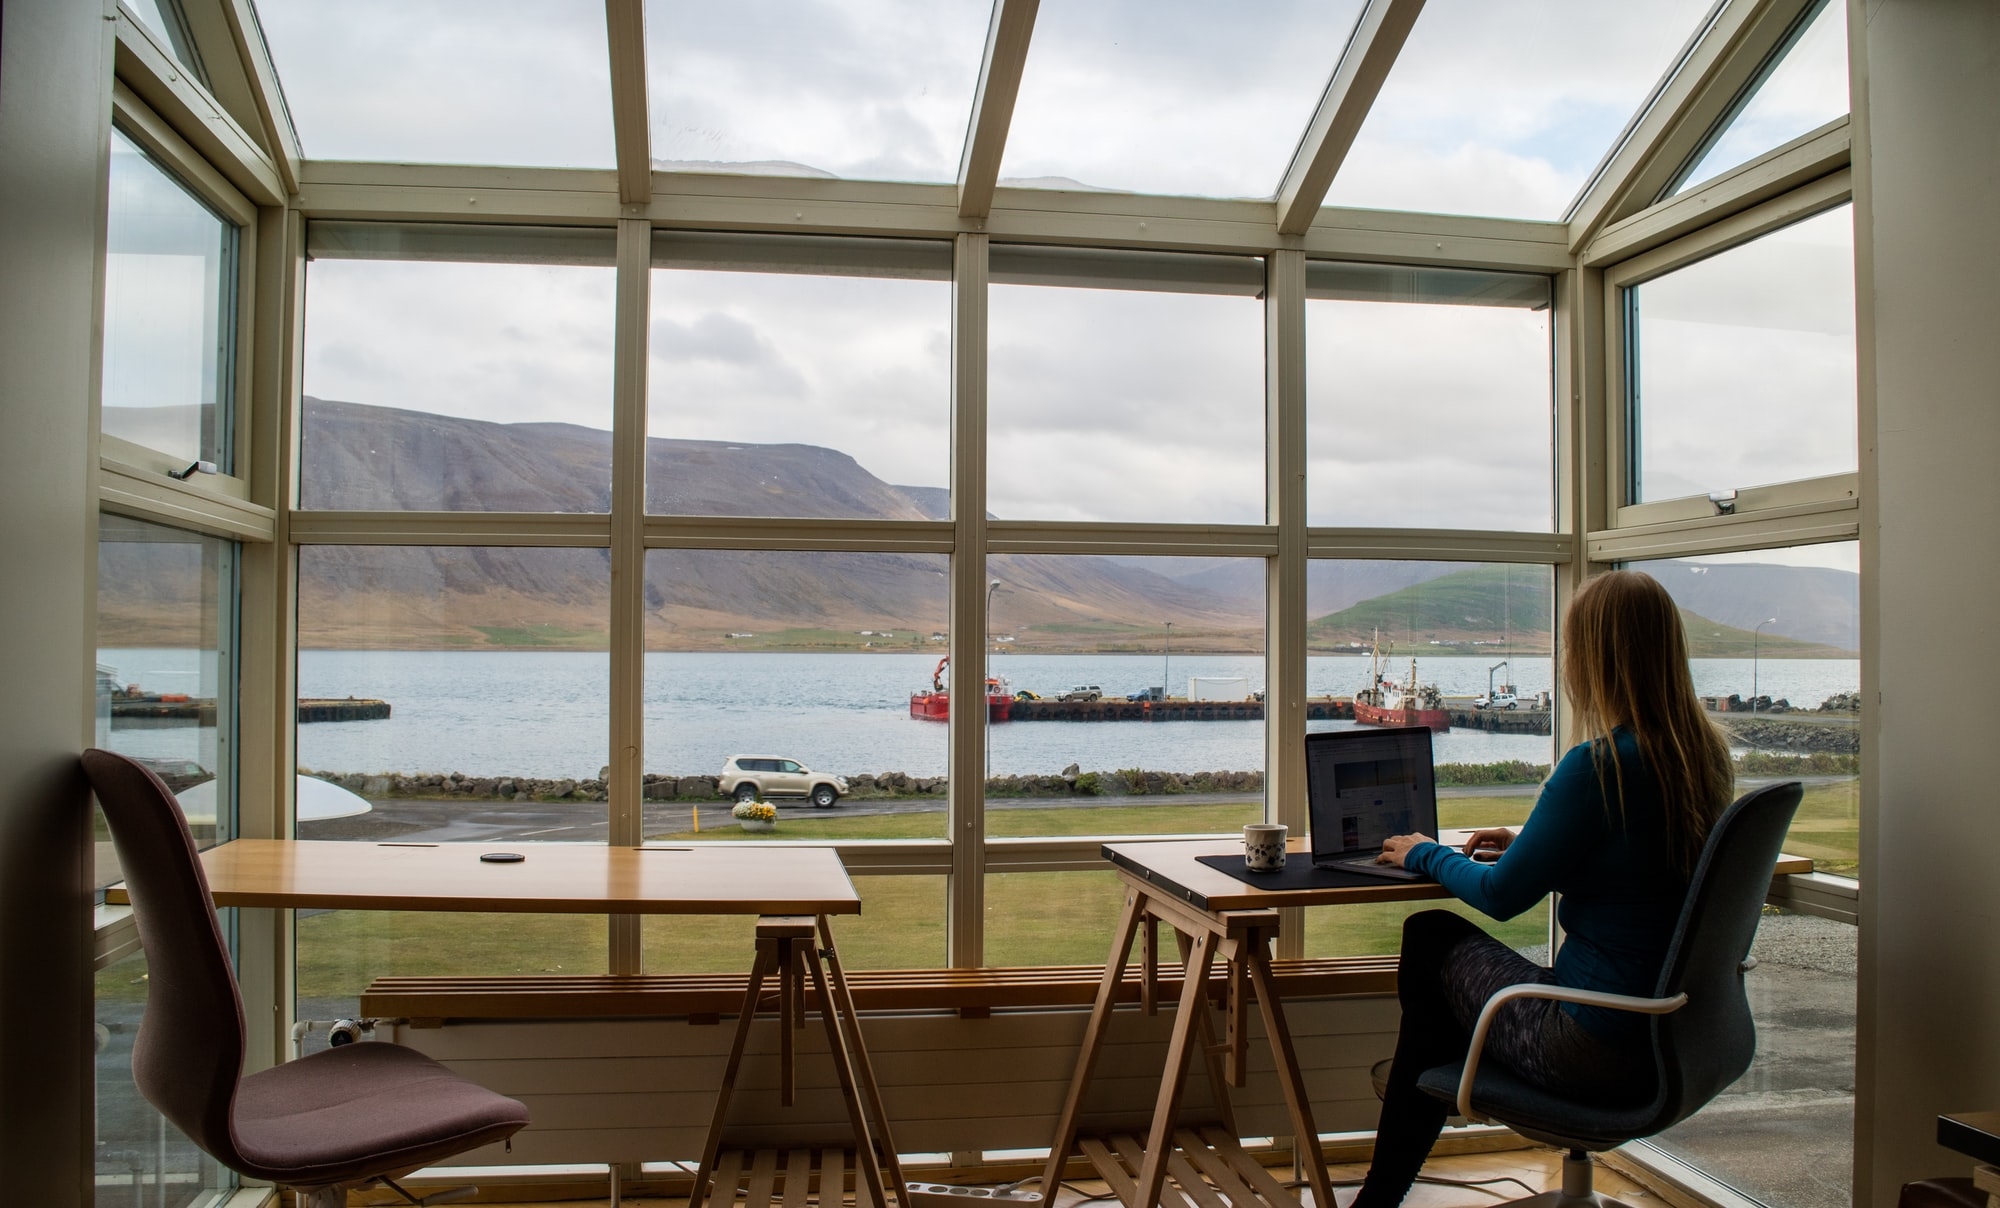 Remote Working in Iceland Self-Portrait (See a video tour of this co-working space at YouTube.com/TravelingwithKristin)